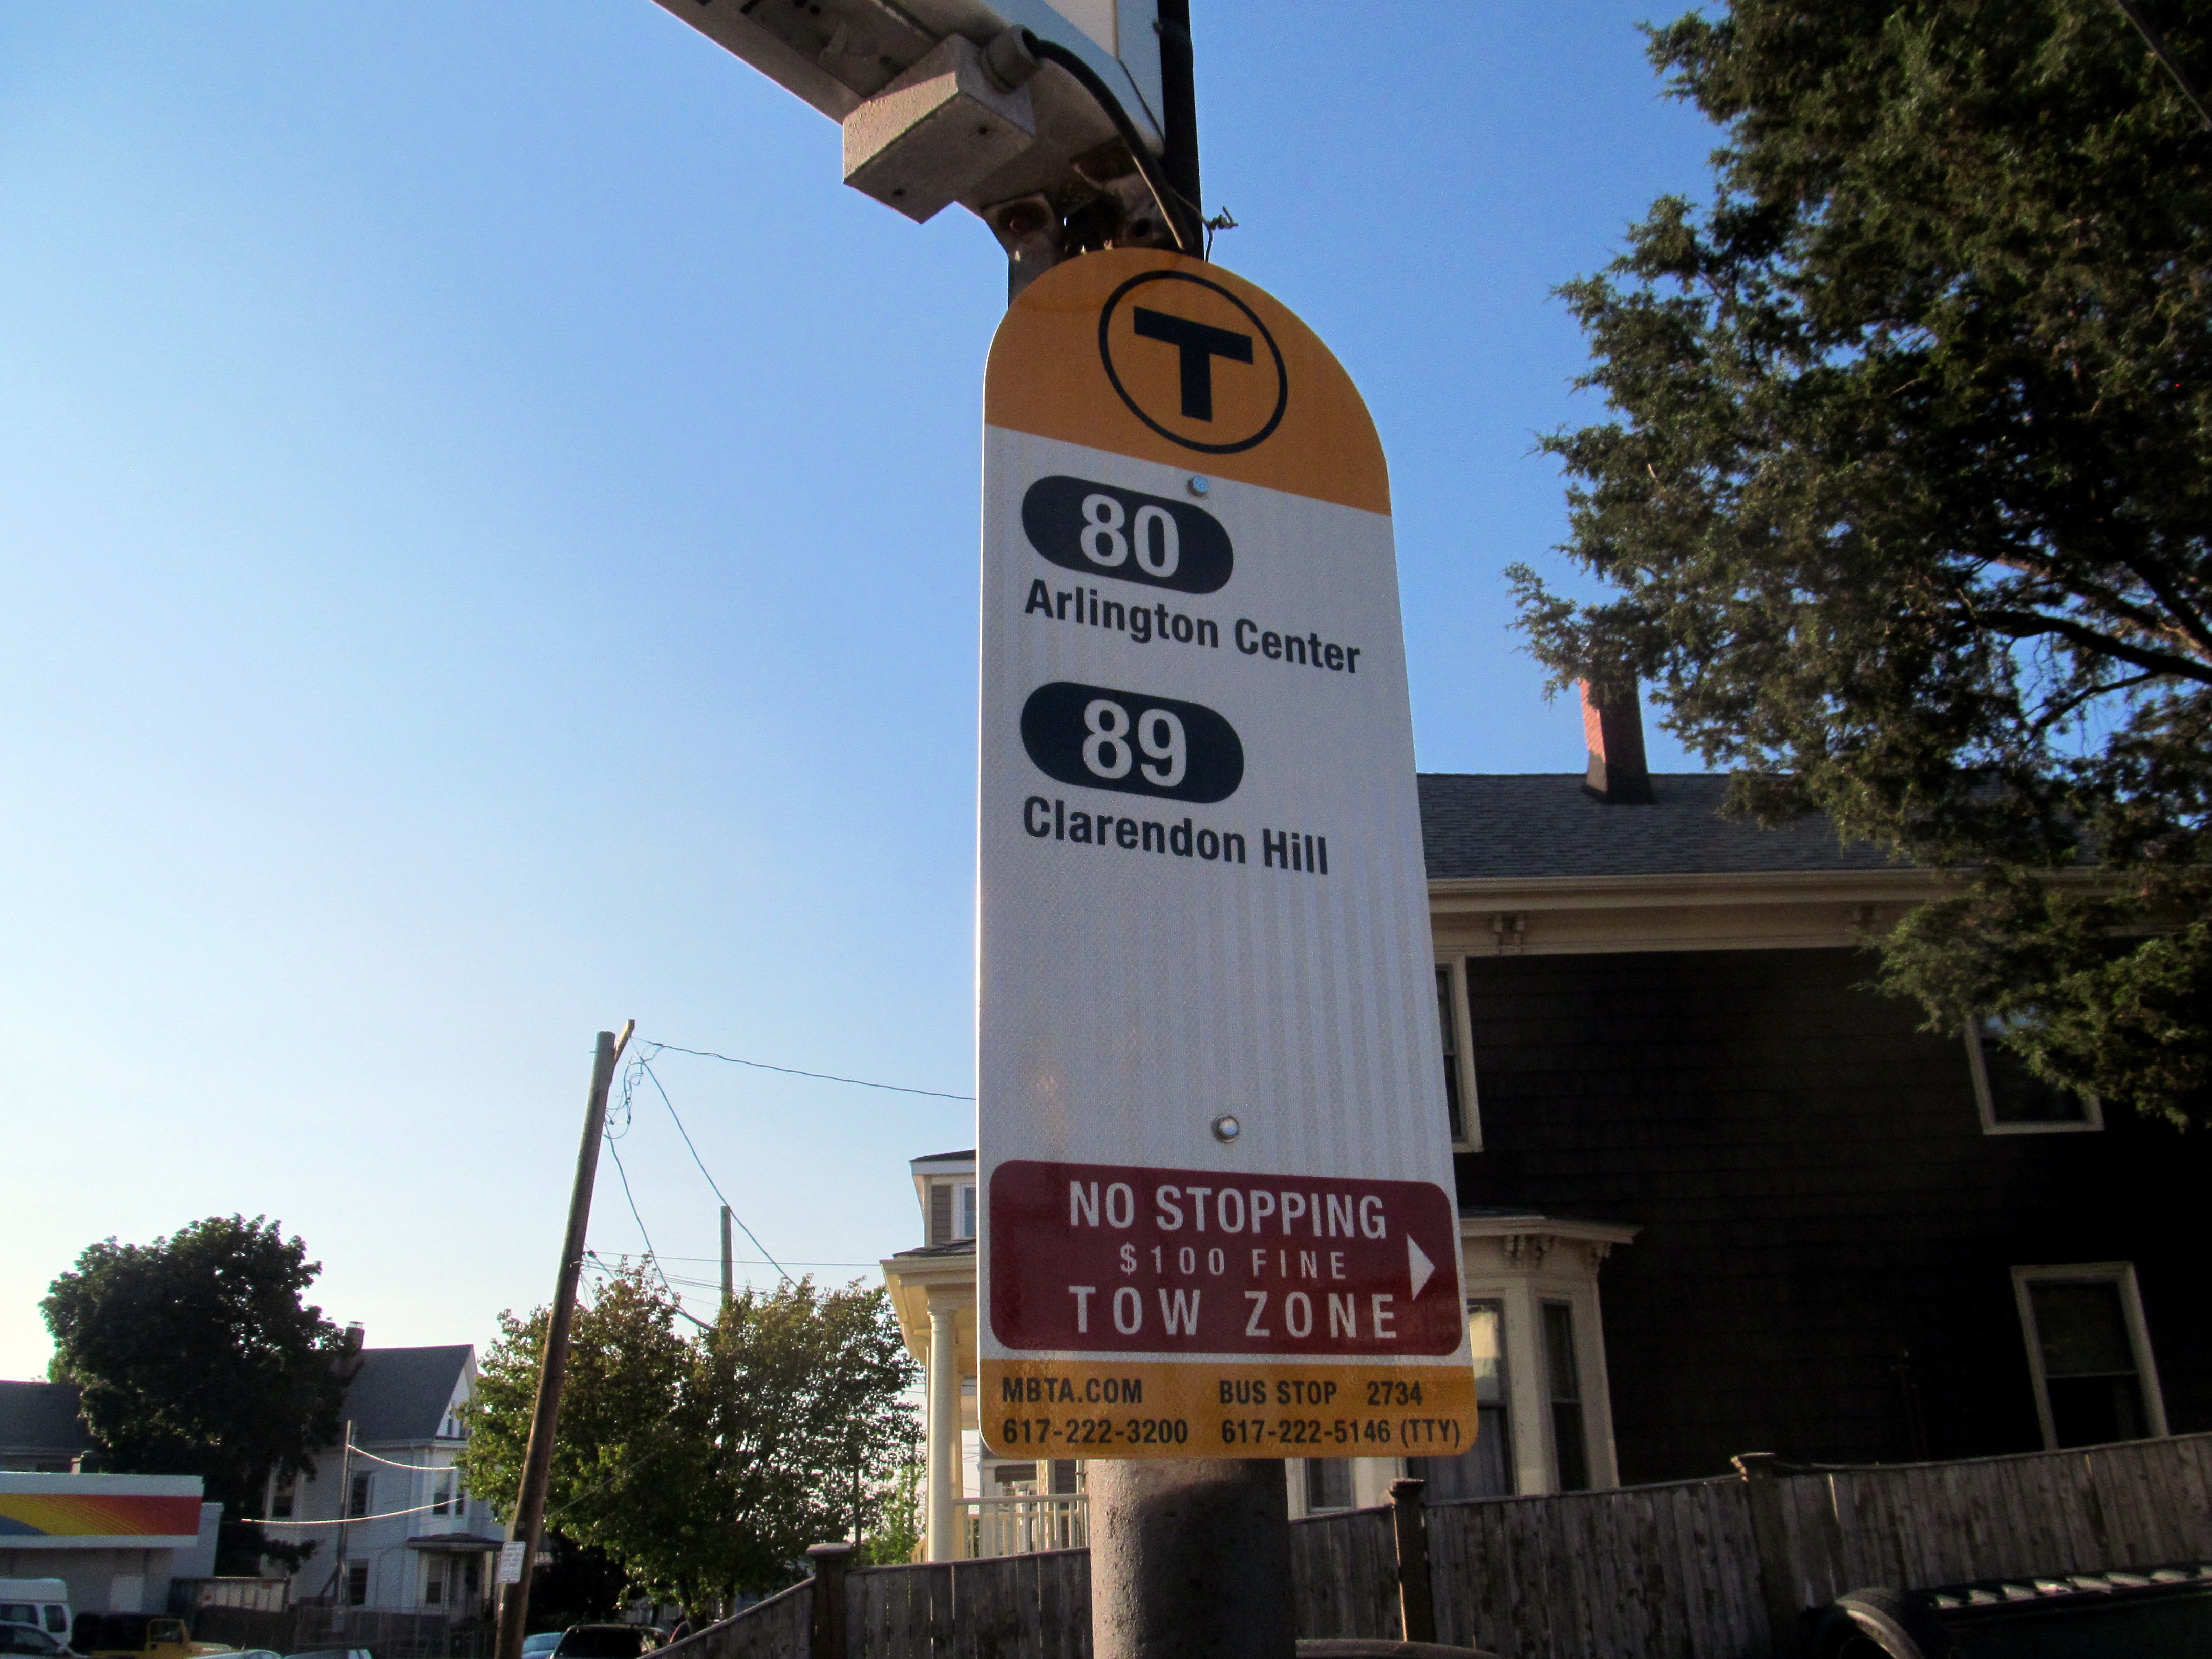 File:MBTA route 80 and 89 bus stop sign, July 2015 JPG - Wikimedia